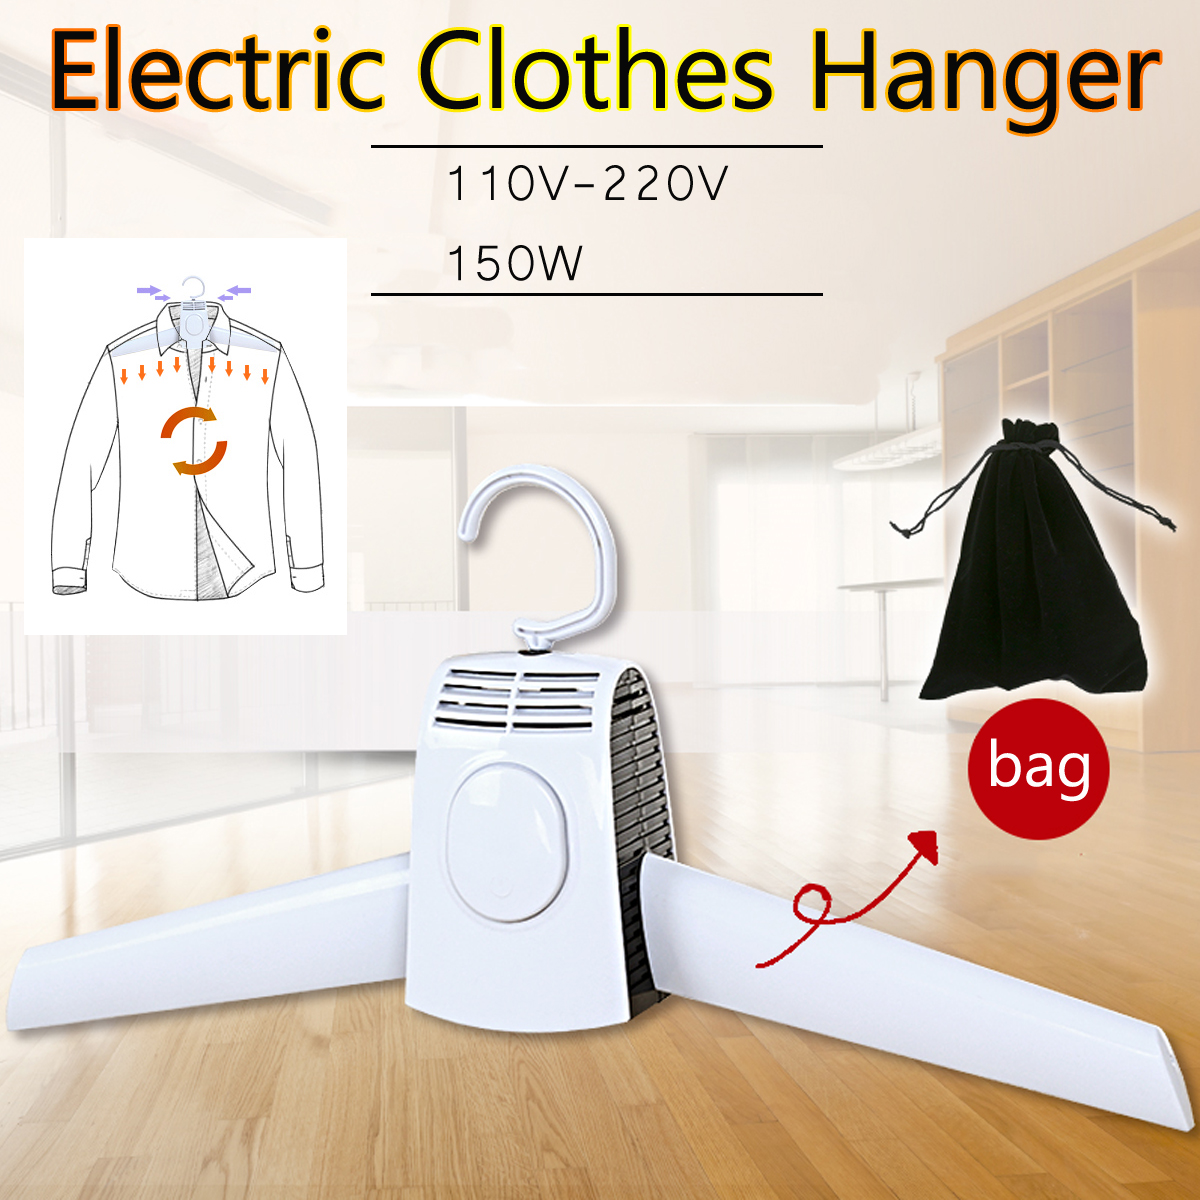 Portable Clothes Hangers Electric Laundry Dryer Smart Shoes Dryer Rack Coat Hanger For Winter Home Travel Rod Rack Hangers|Stove Hand Warmers| |  - title=